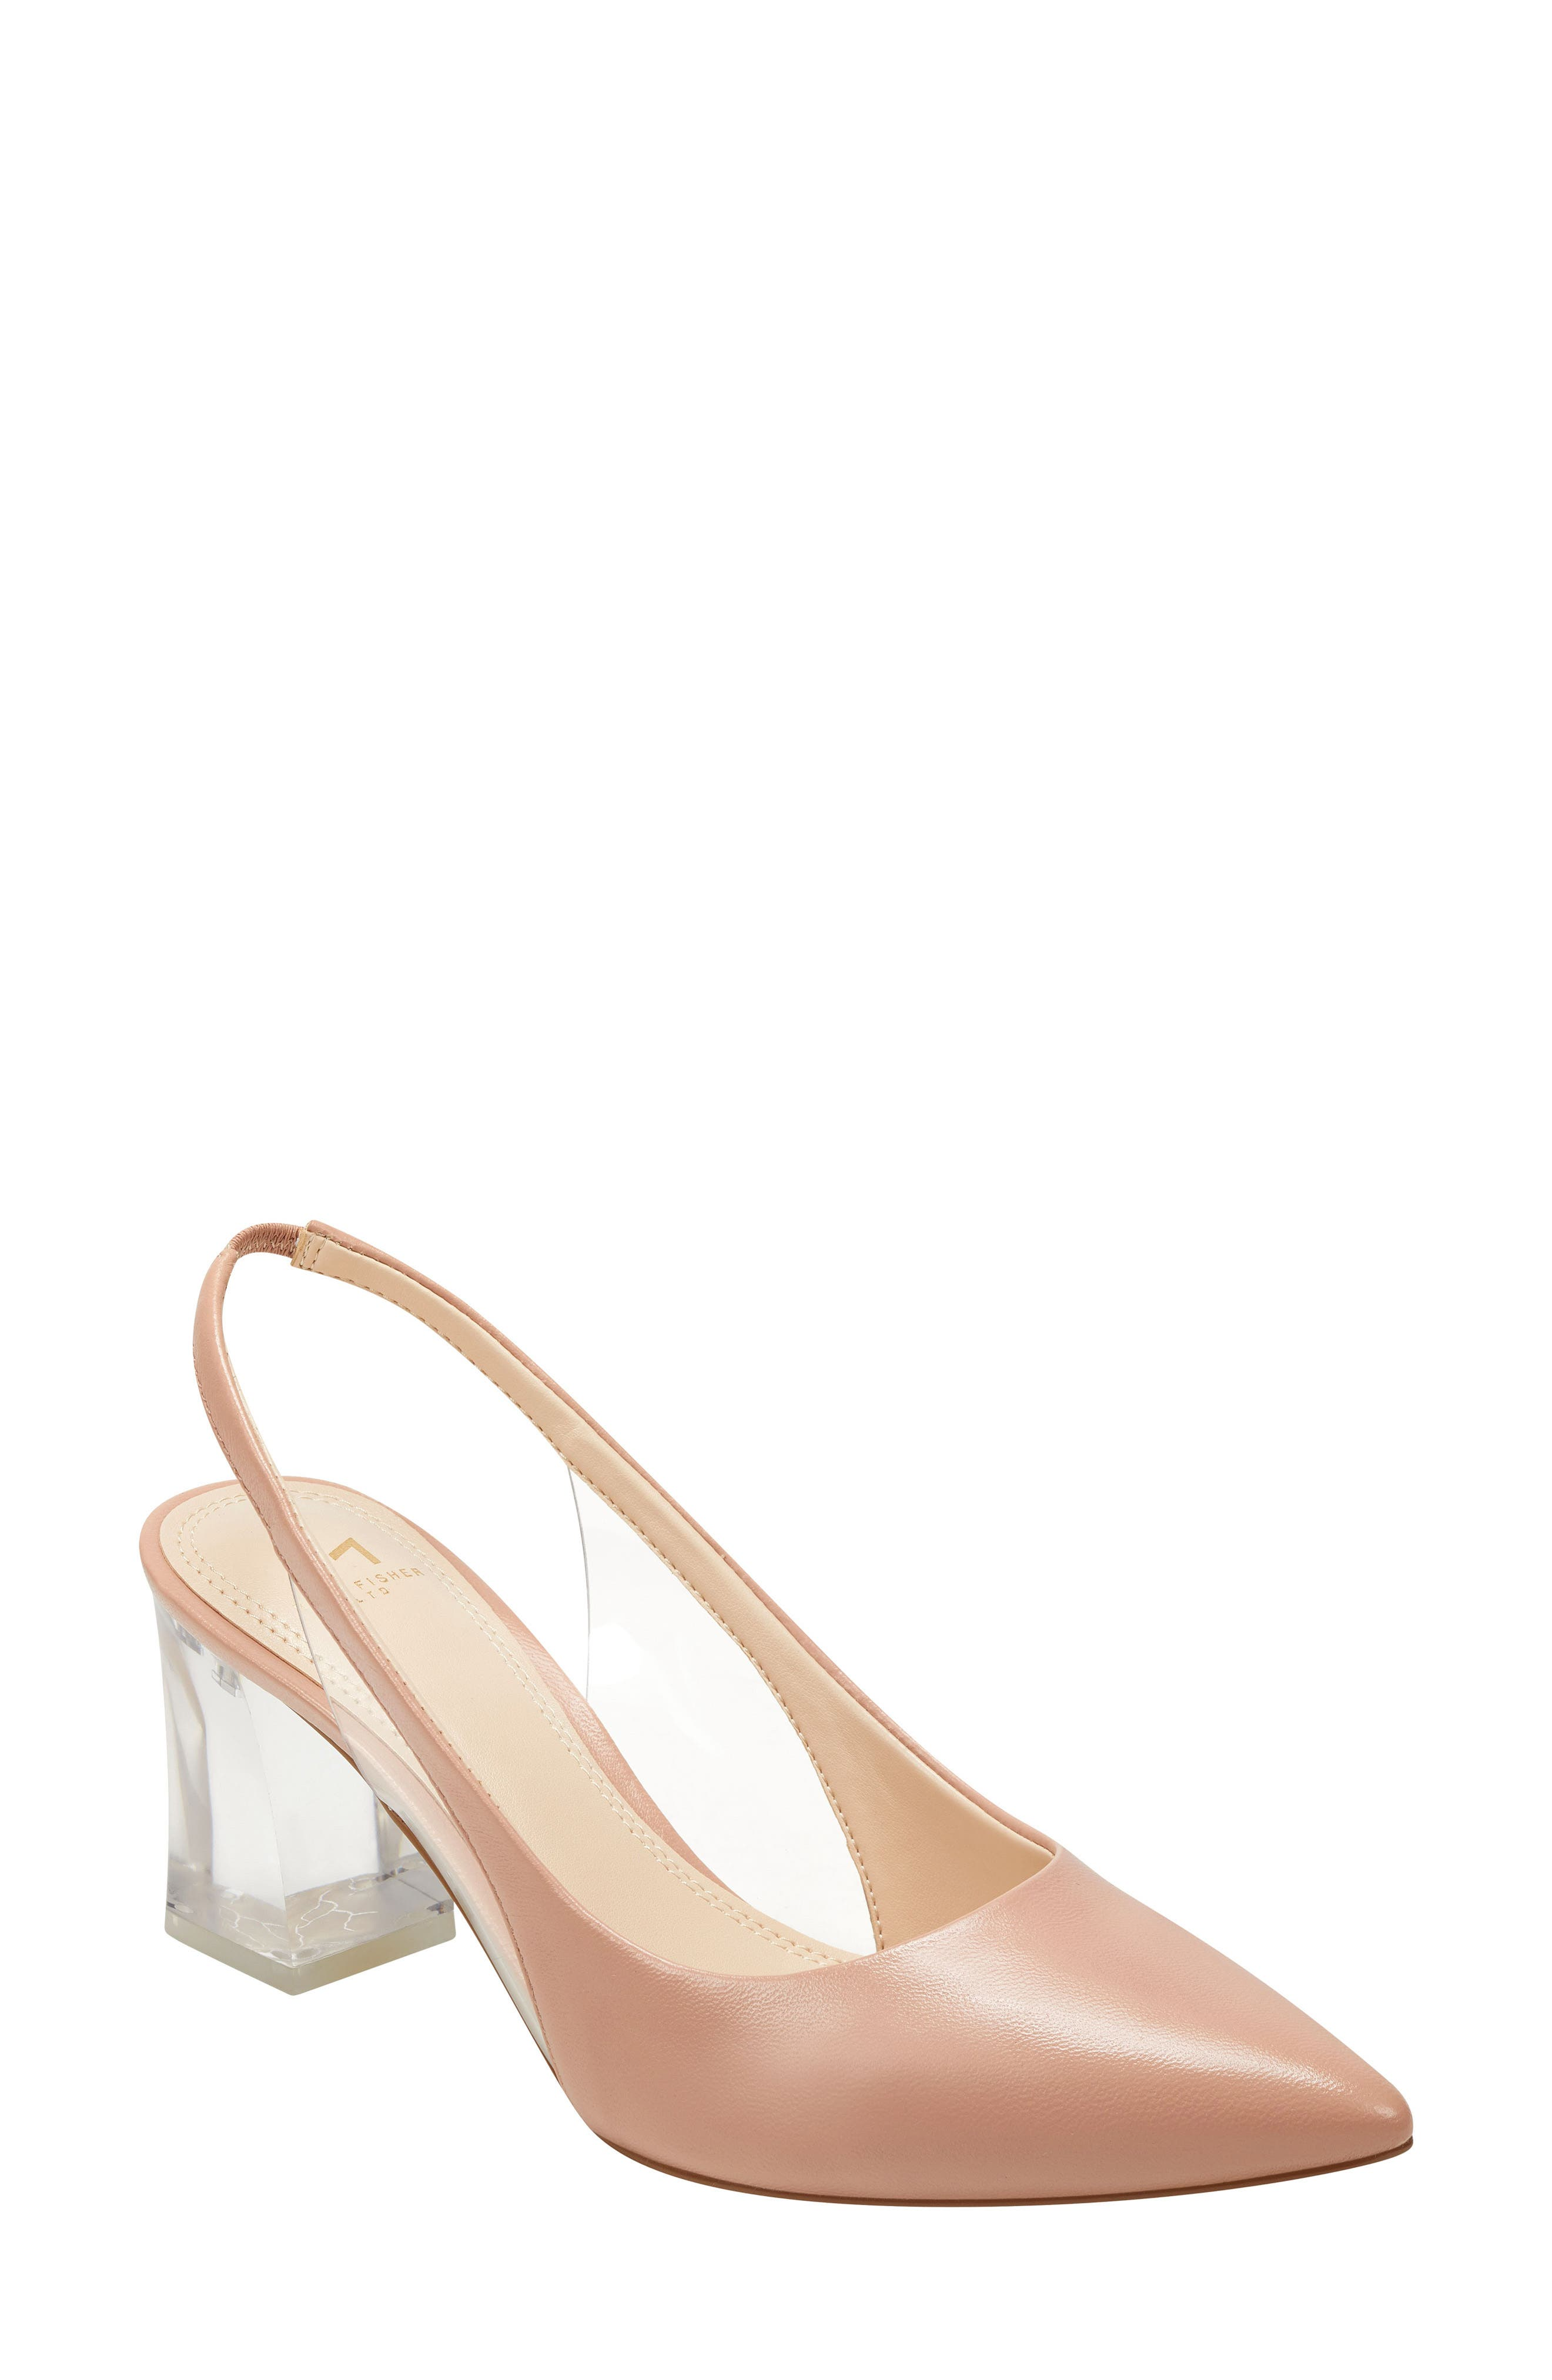 Image of Marc Fisher LTD Zudi Slingback Pump